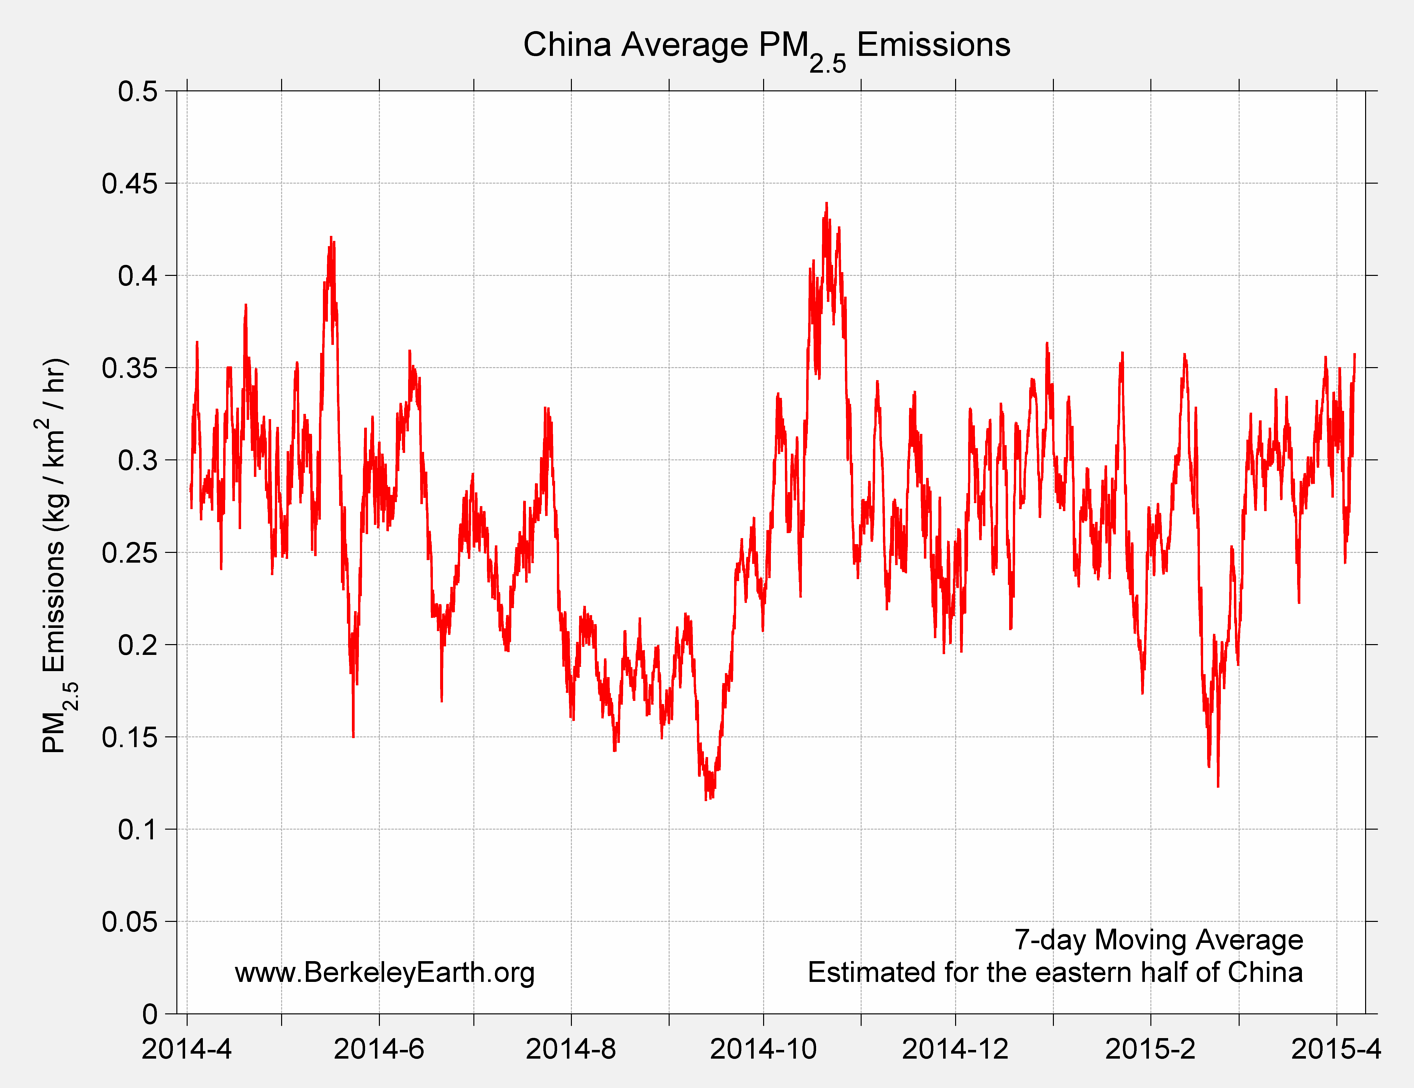 China_pm25_Average_Emission_TimeSeries